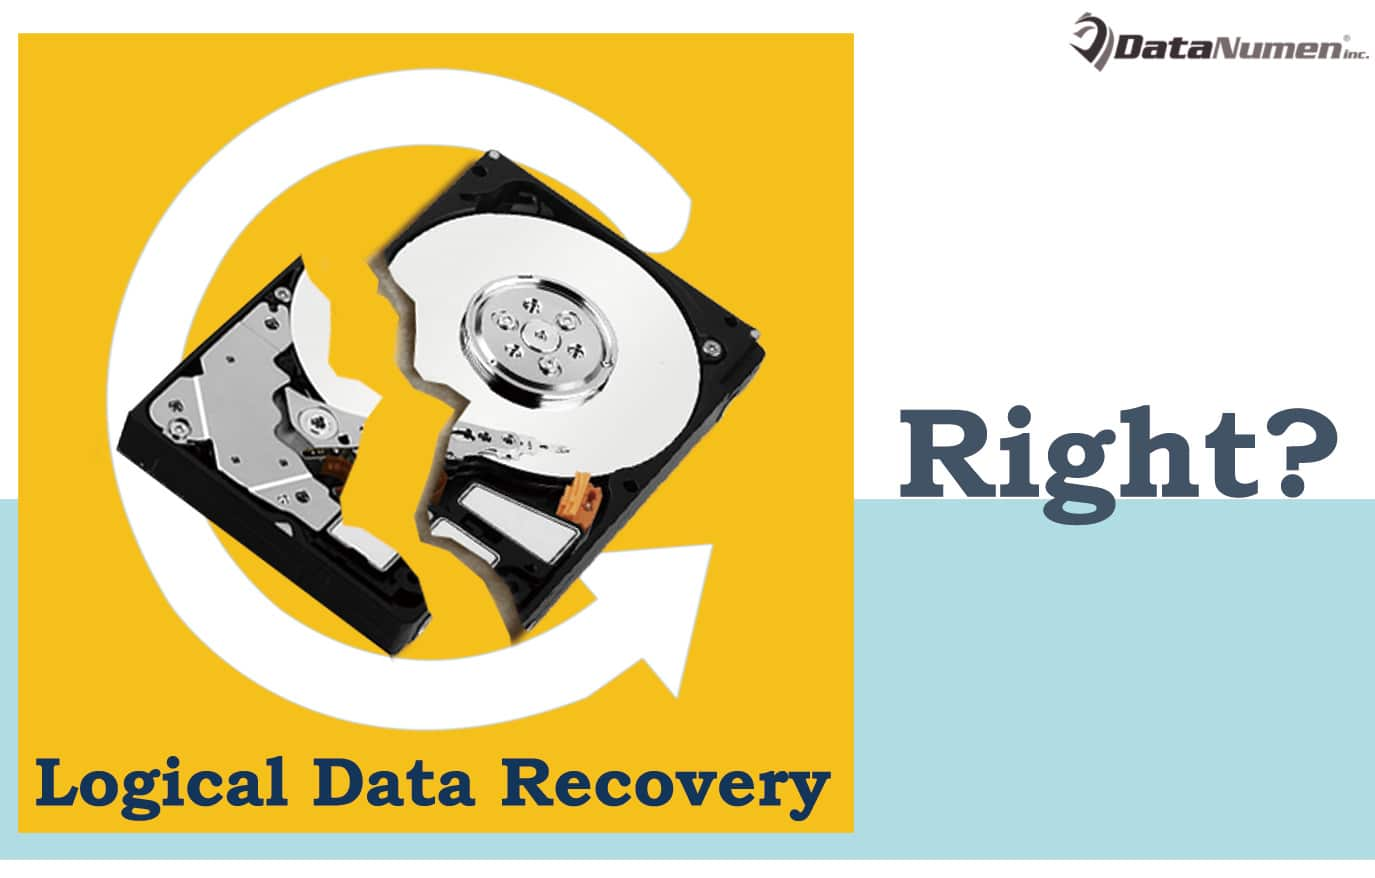 Is It Right to Perform Logical Data Recovery on Physically Damaged Hard Drive?